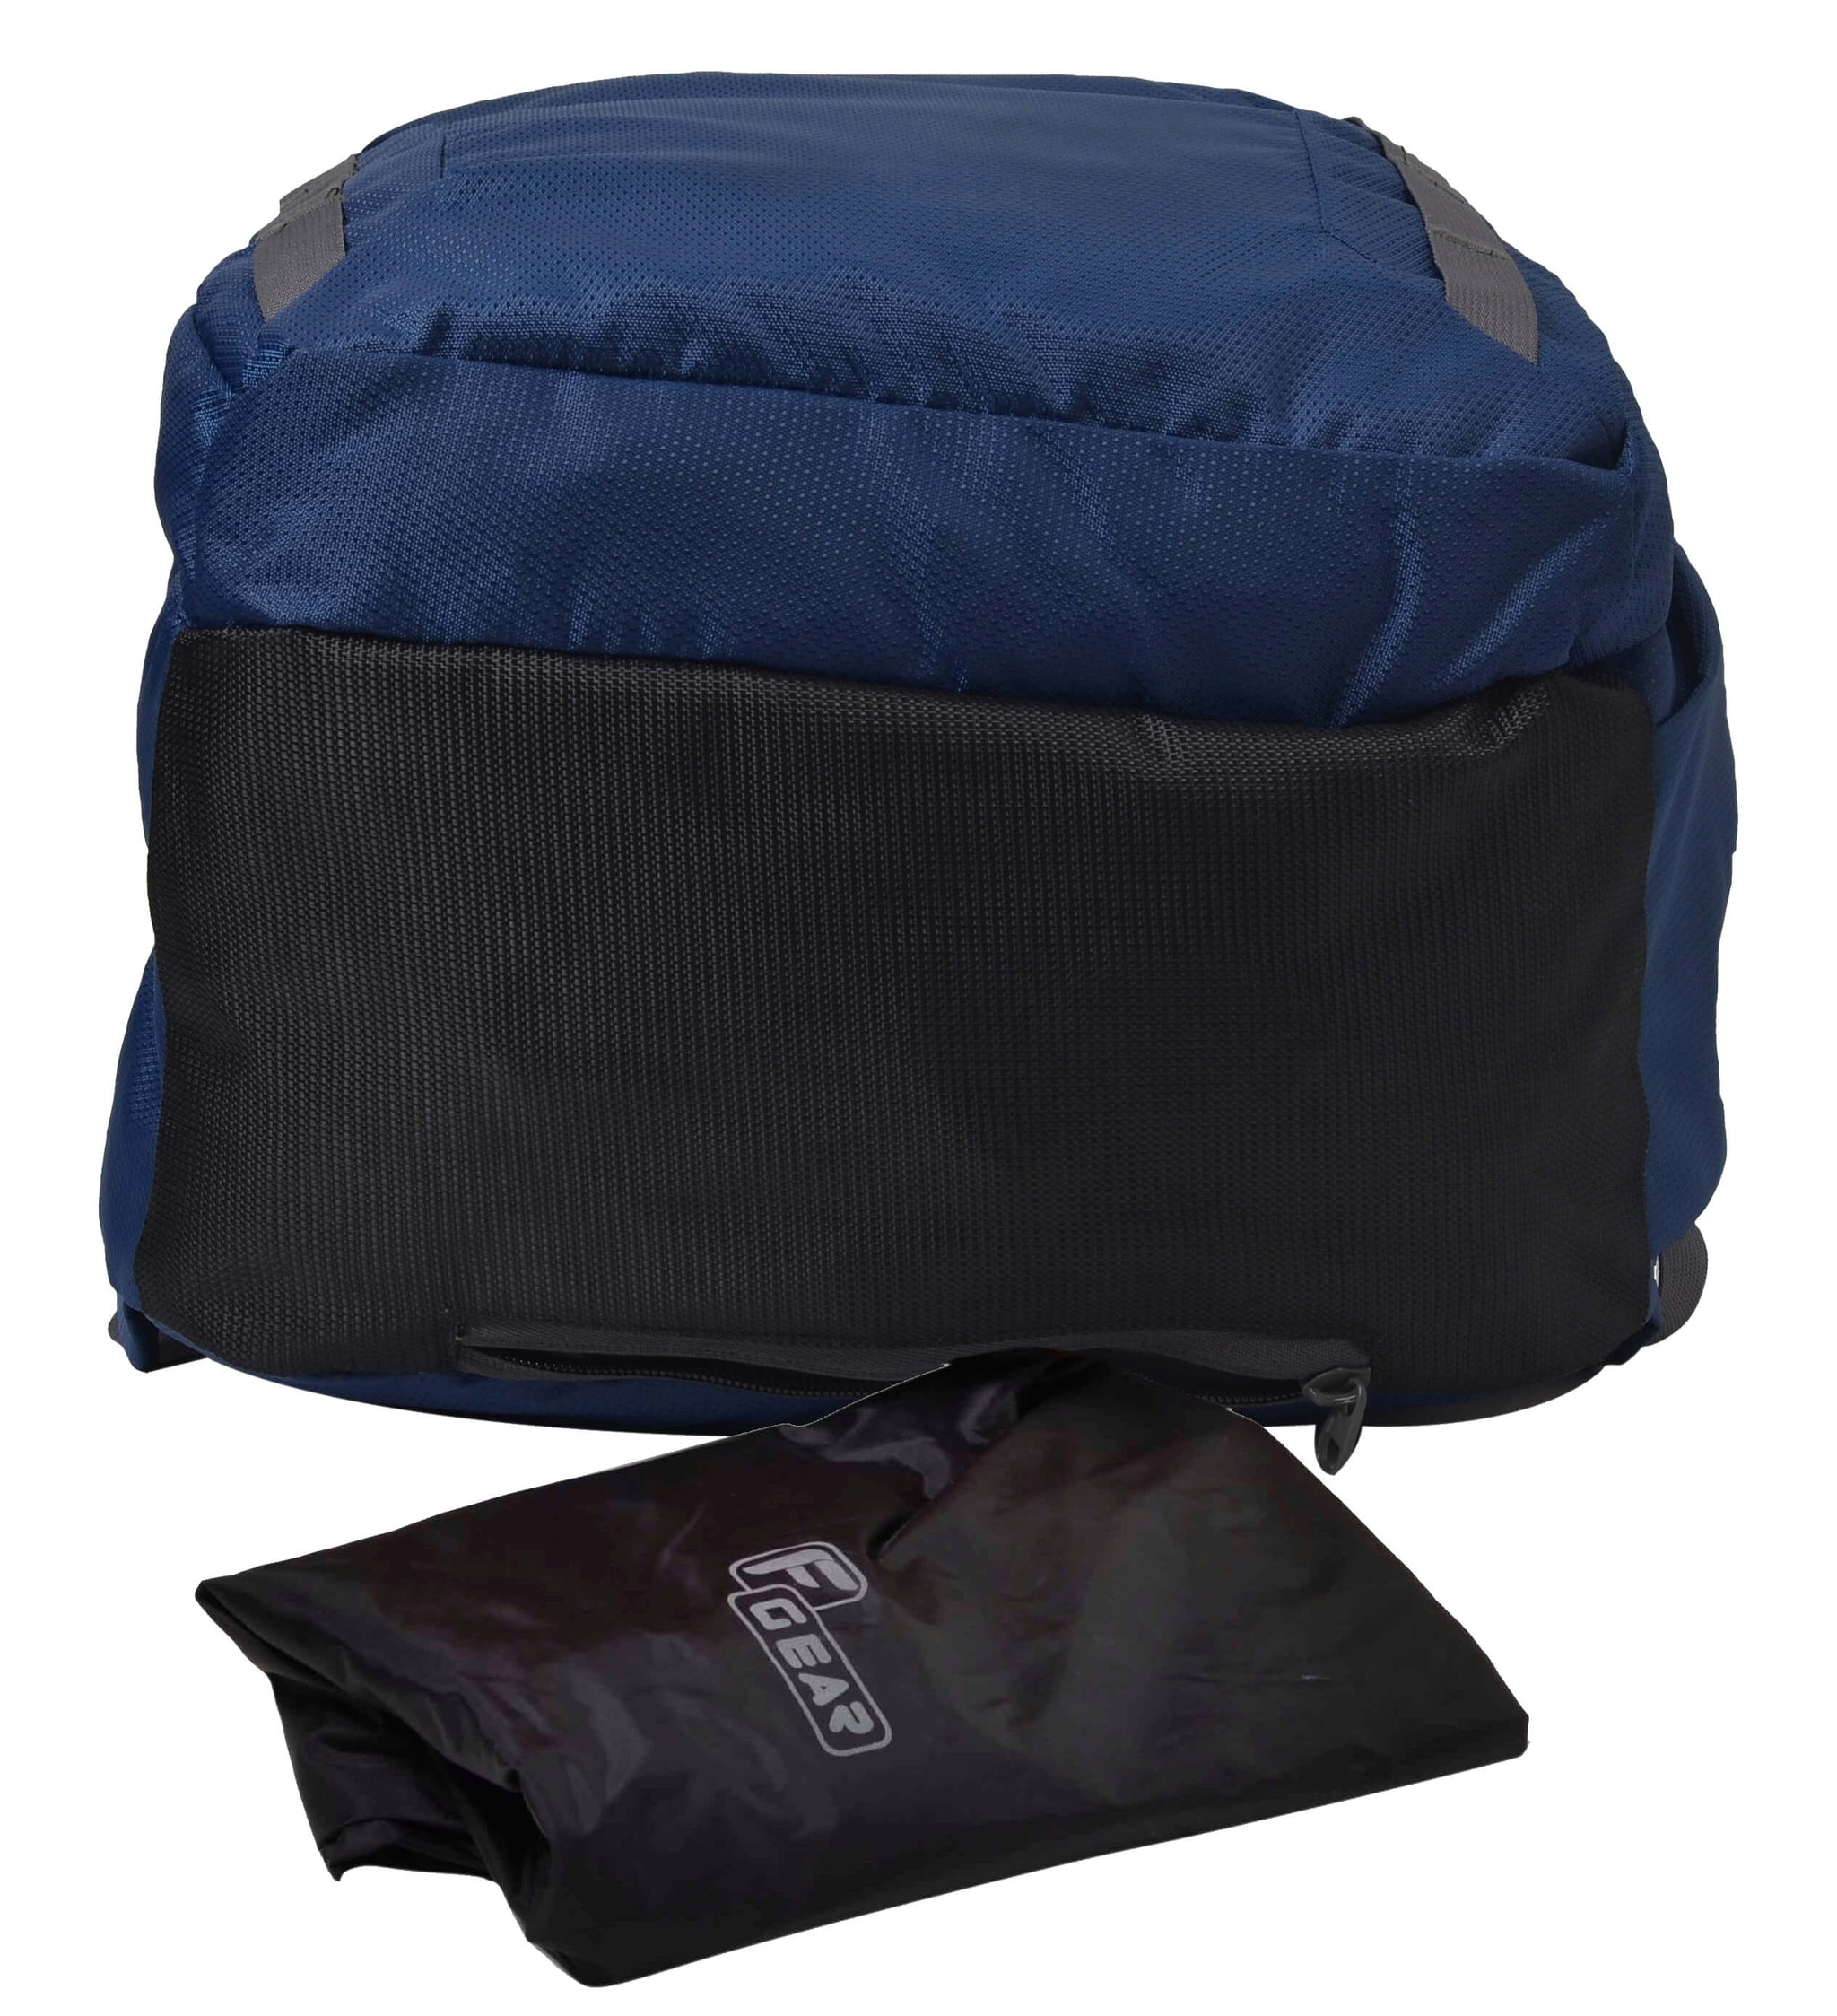 F Gear Raider Federal Blue 30 Liter Backpack with Rain Cover (2833)